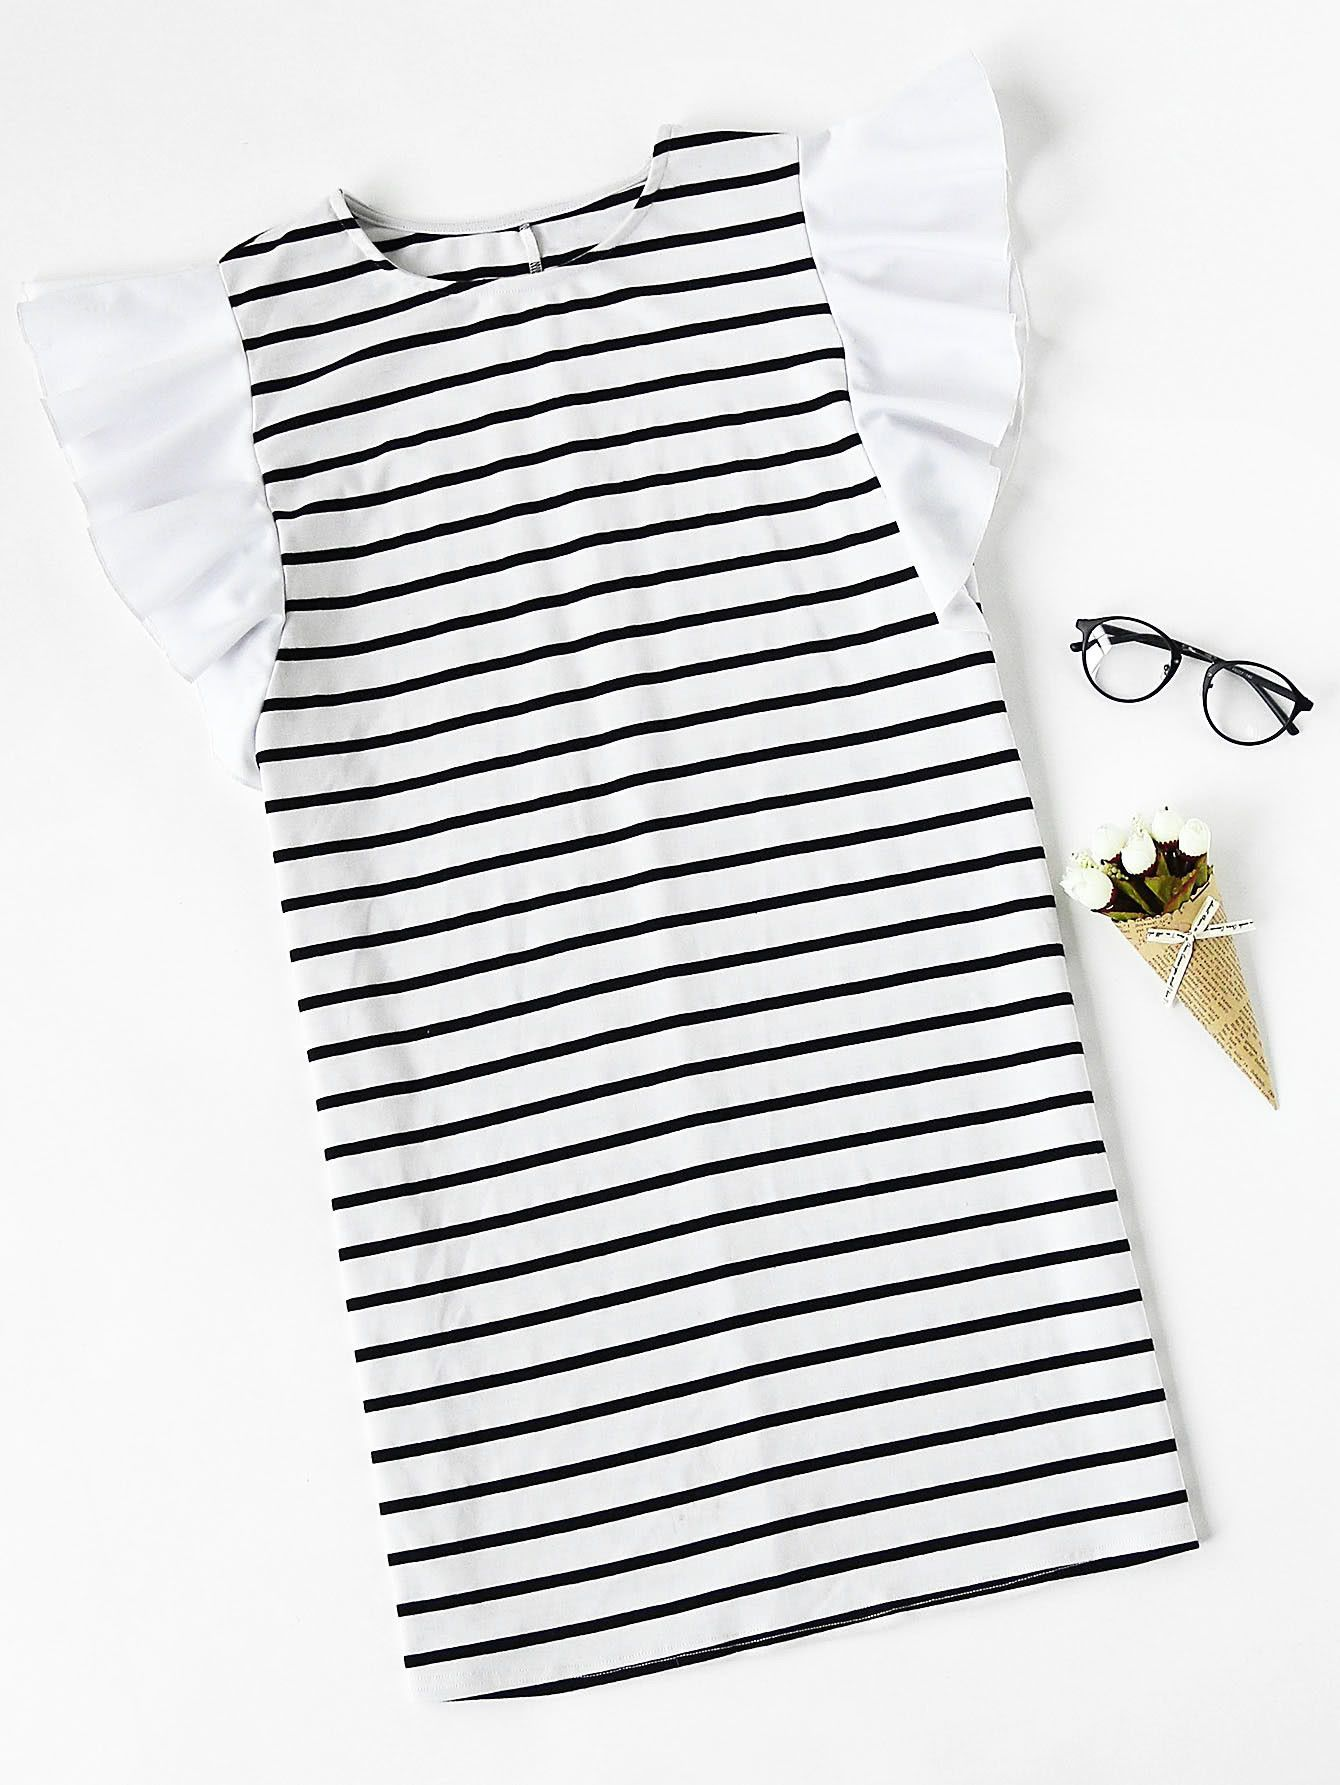 Buy it now. Ruffle Cap Sleeve Striped Tee Dress. Black and White Casual Cute Jersey Round Neck Cap Sleeve Shift Short Ruffle Striped Color Block Fabric has some stretch Summer Tshirt Dresses. , vestidoinformal, casual, informales, informal, day, kleidcasual, vestidoinformal, robeinformelle, vestitoinformale, día. SheIn  casual dress  for woman.